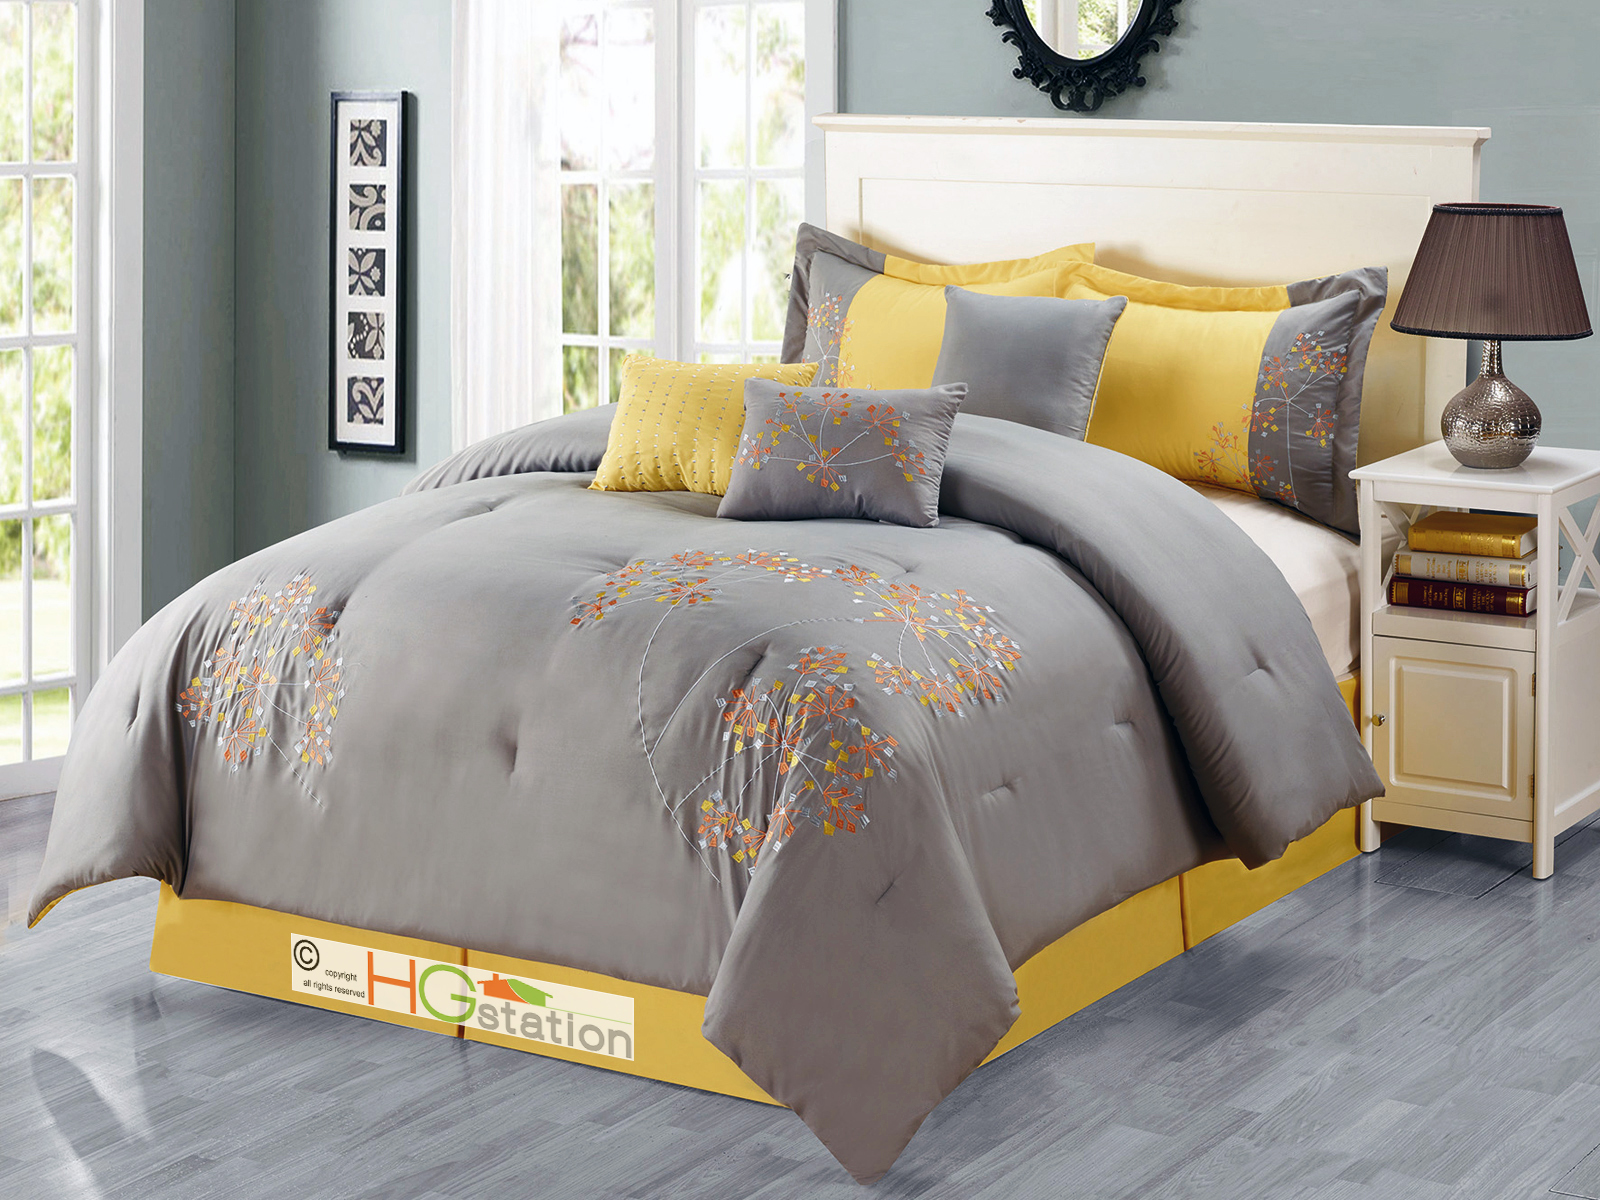 7-Pc Cheerful Dandelion Floral Embroidery Comforter Set